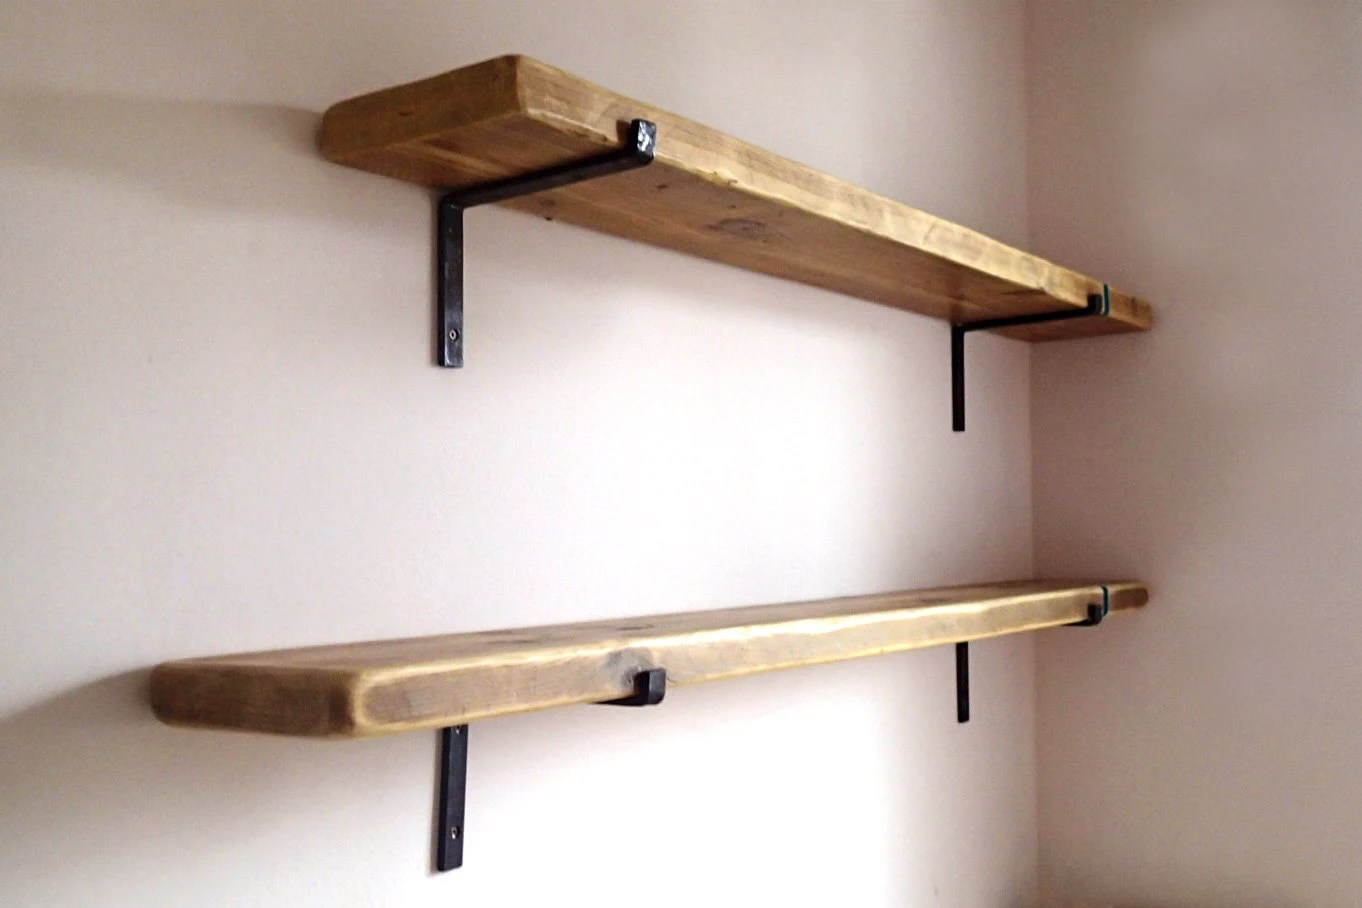 9 Deep Reclaimed Wood Shelves With 2 Iron Brackets